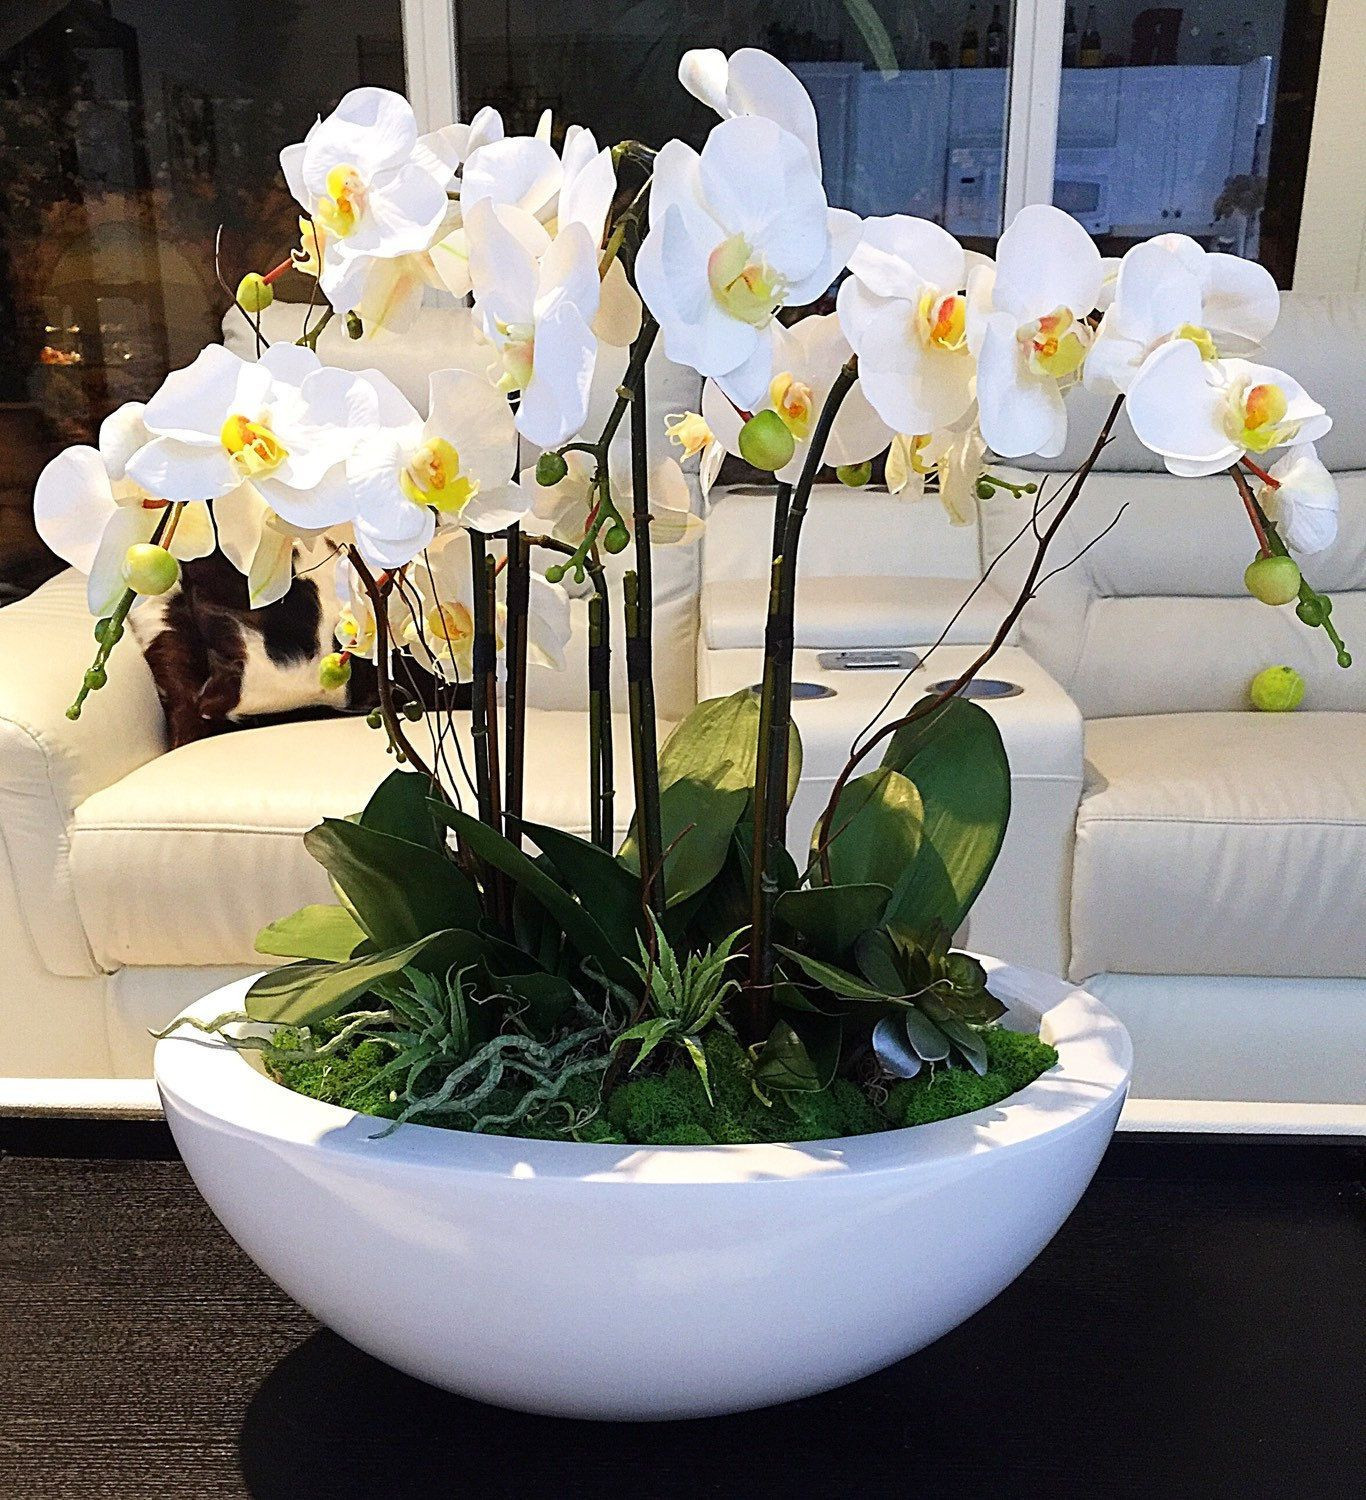 faux white hydrangea arrangement in glass vase of orchid in glass vase unique custom order for jeremy white orchid with regard to orchid in glass vase unique custom order for jeremy white orchid arrangement realistic